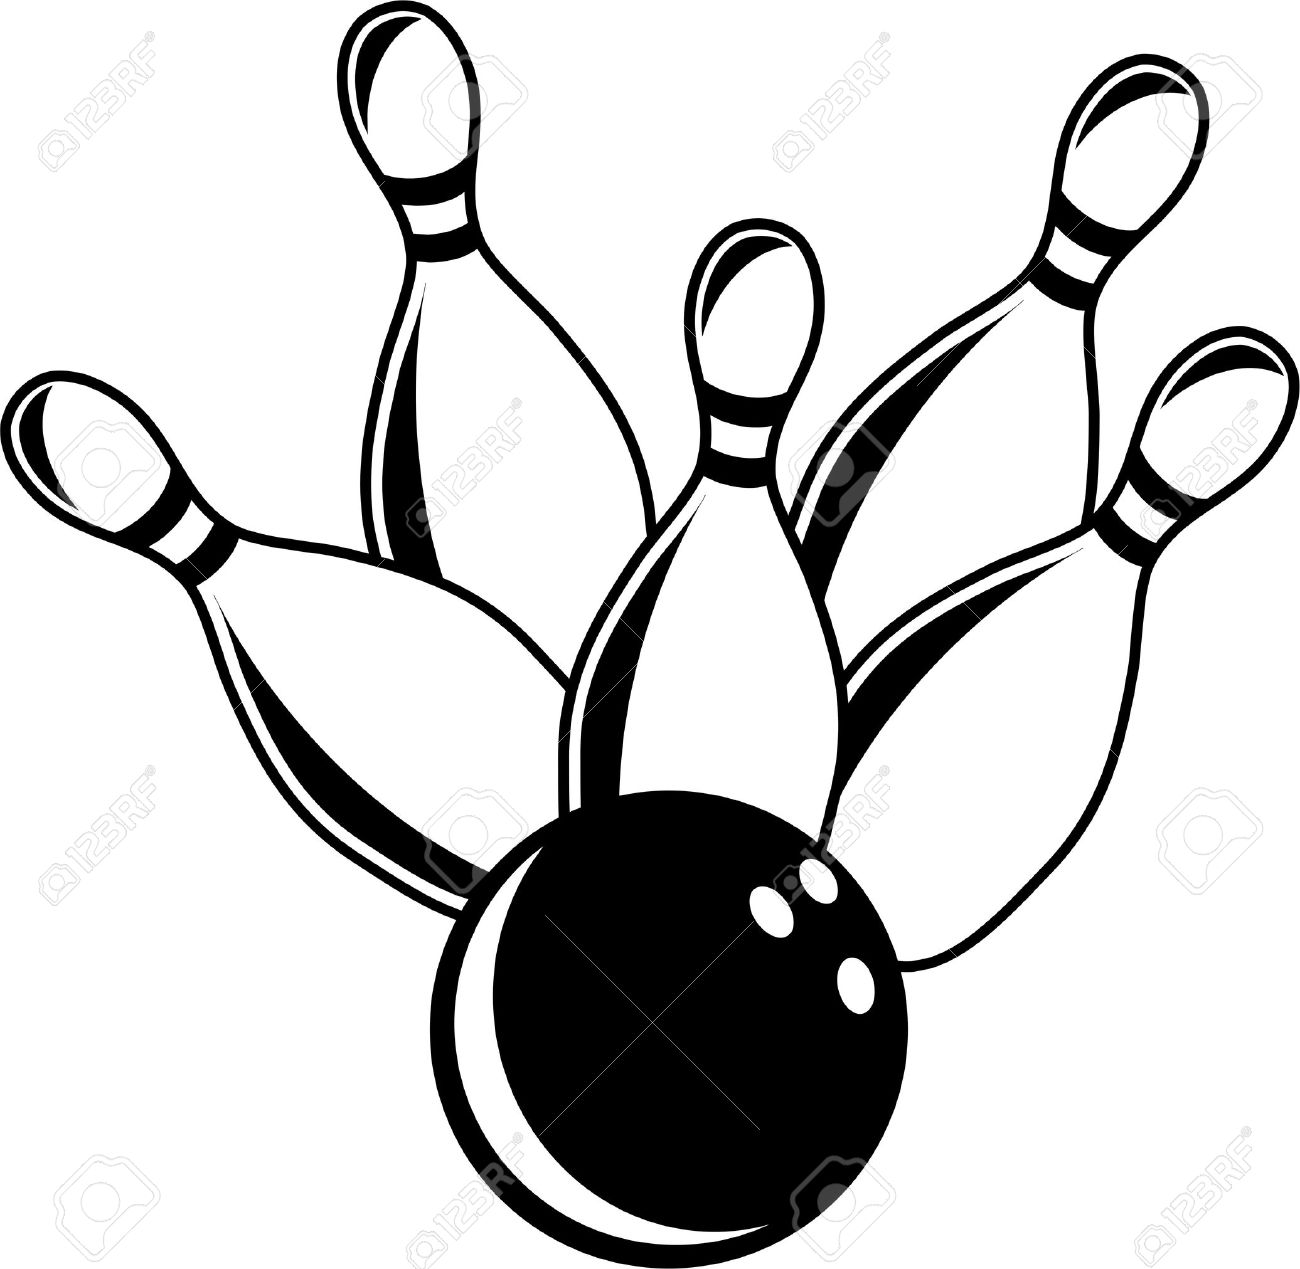 3914 Bowling free clipart.